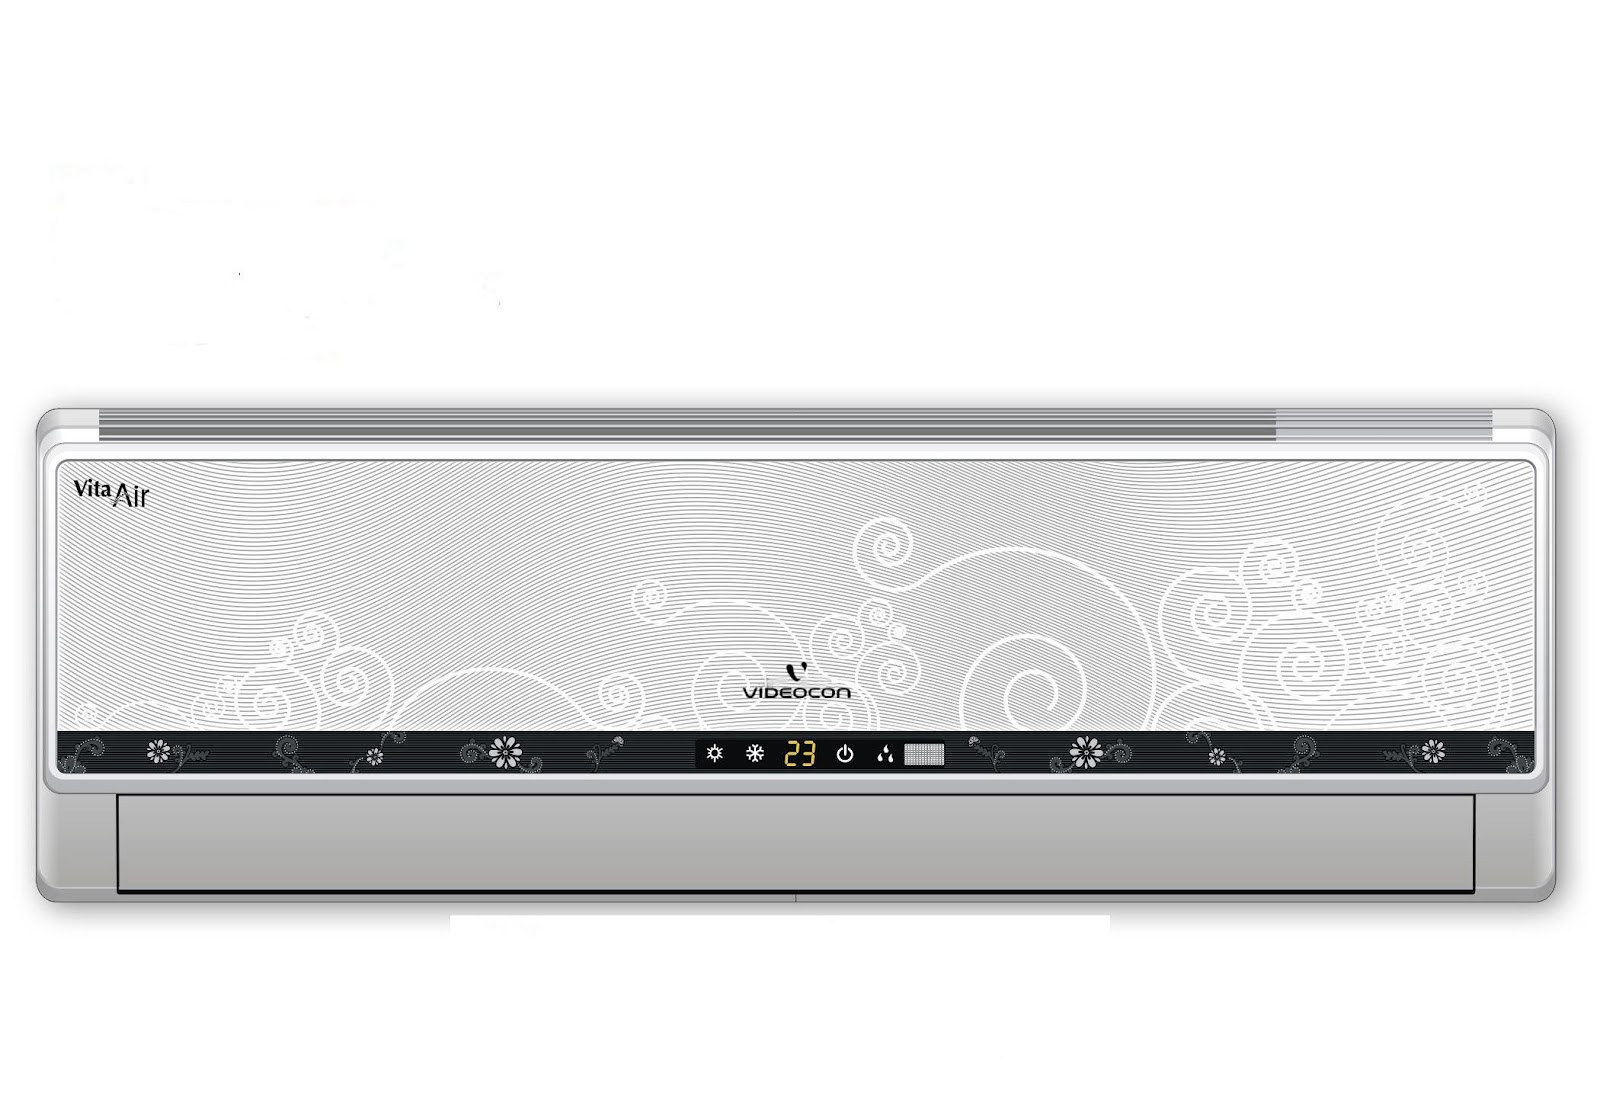 Ultra cool Fun: Top 10 Airconditioners (AC's) in India #796B3F